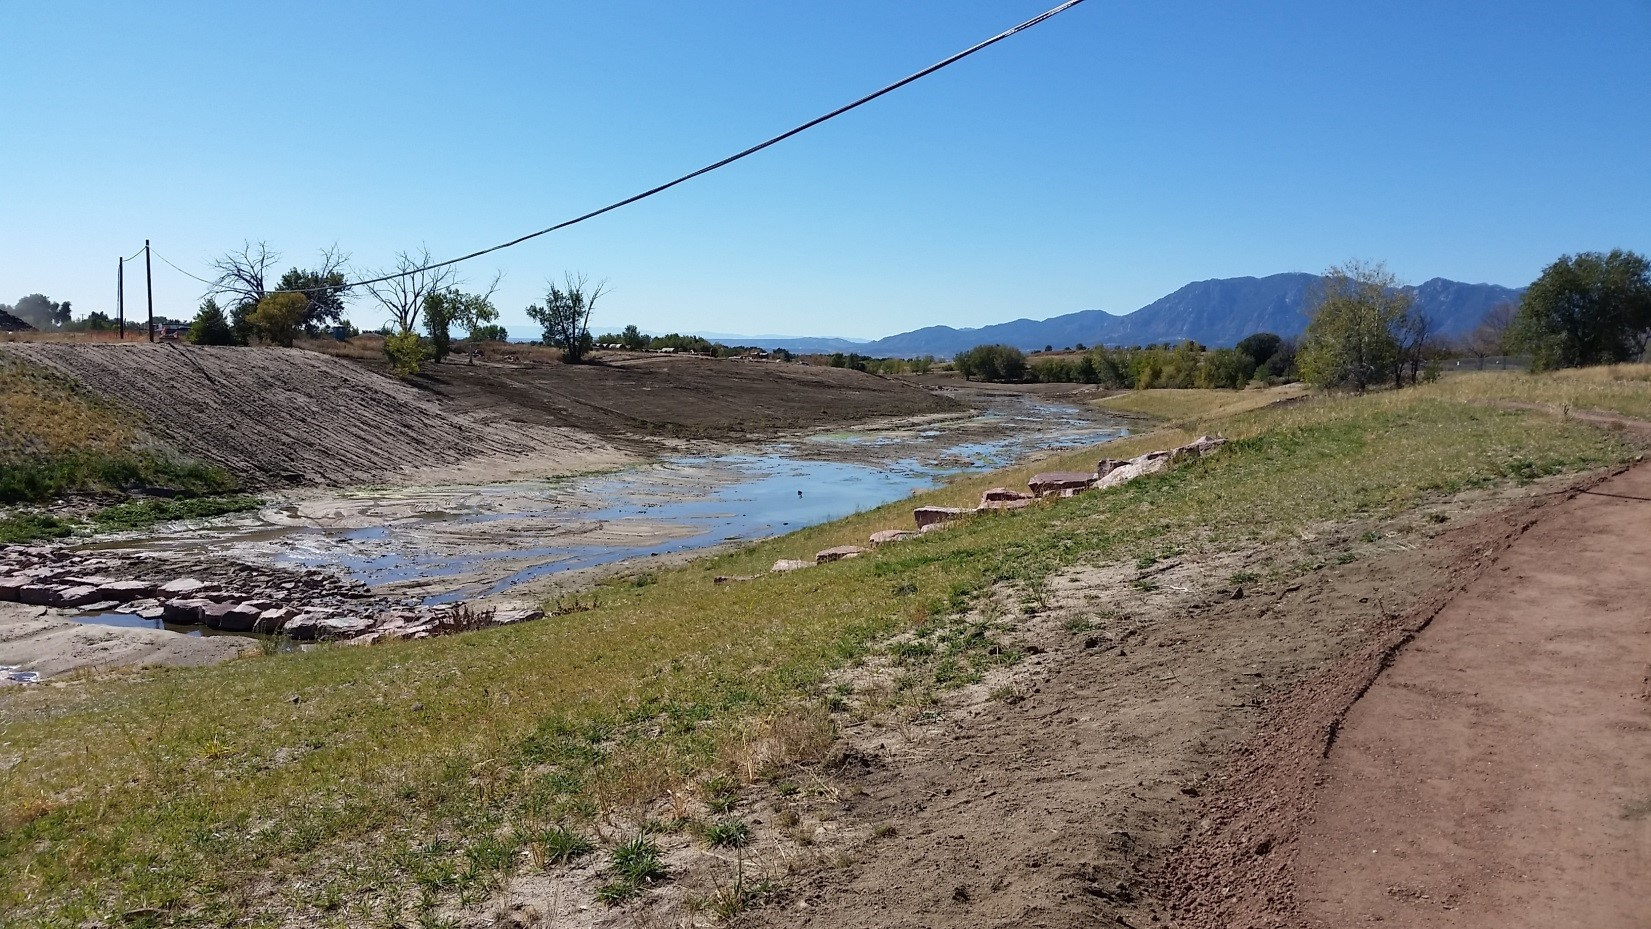 After photo - showing grassy creek bank and waterway